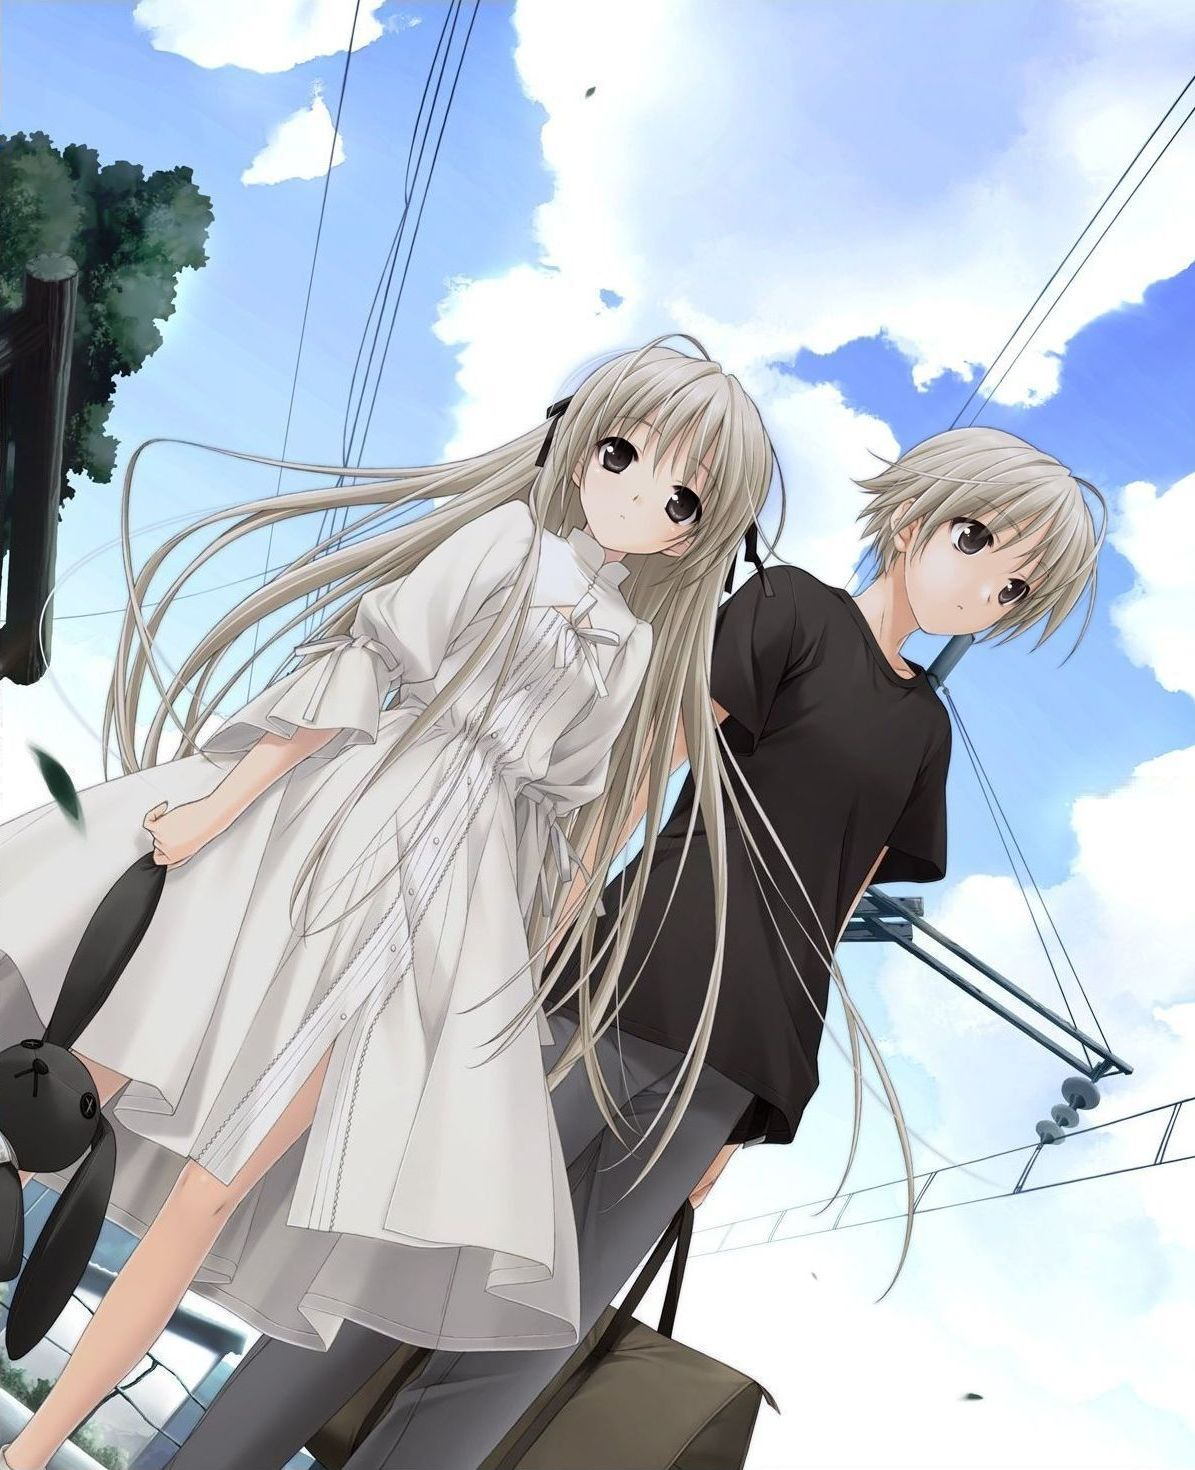 Yosuga No Sora (Sky Of Connection) Image #233986